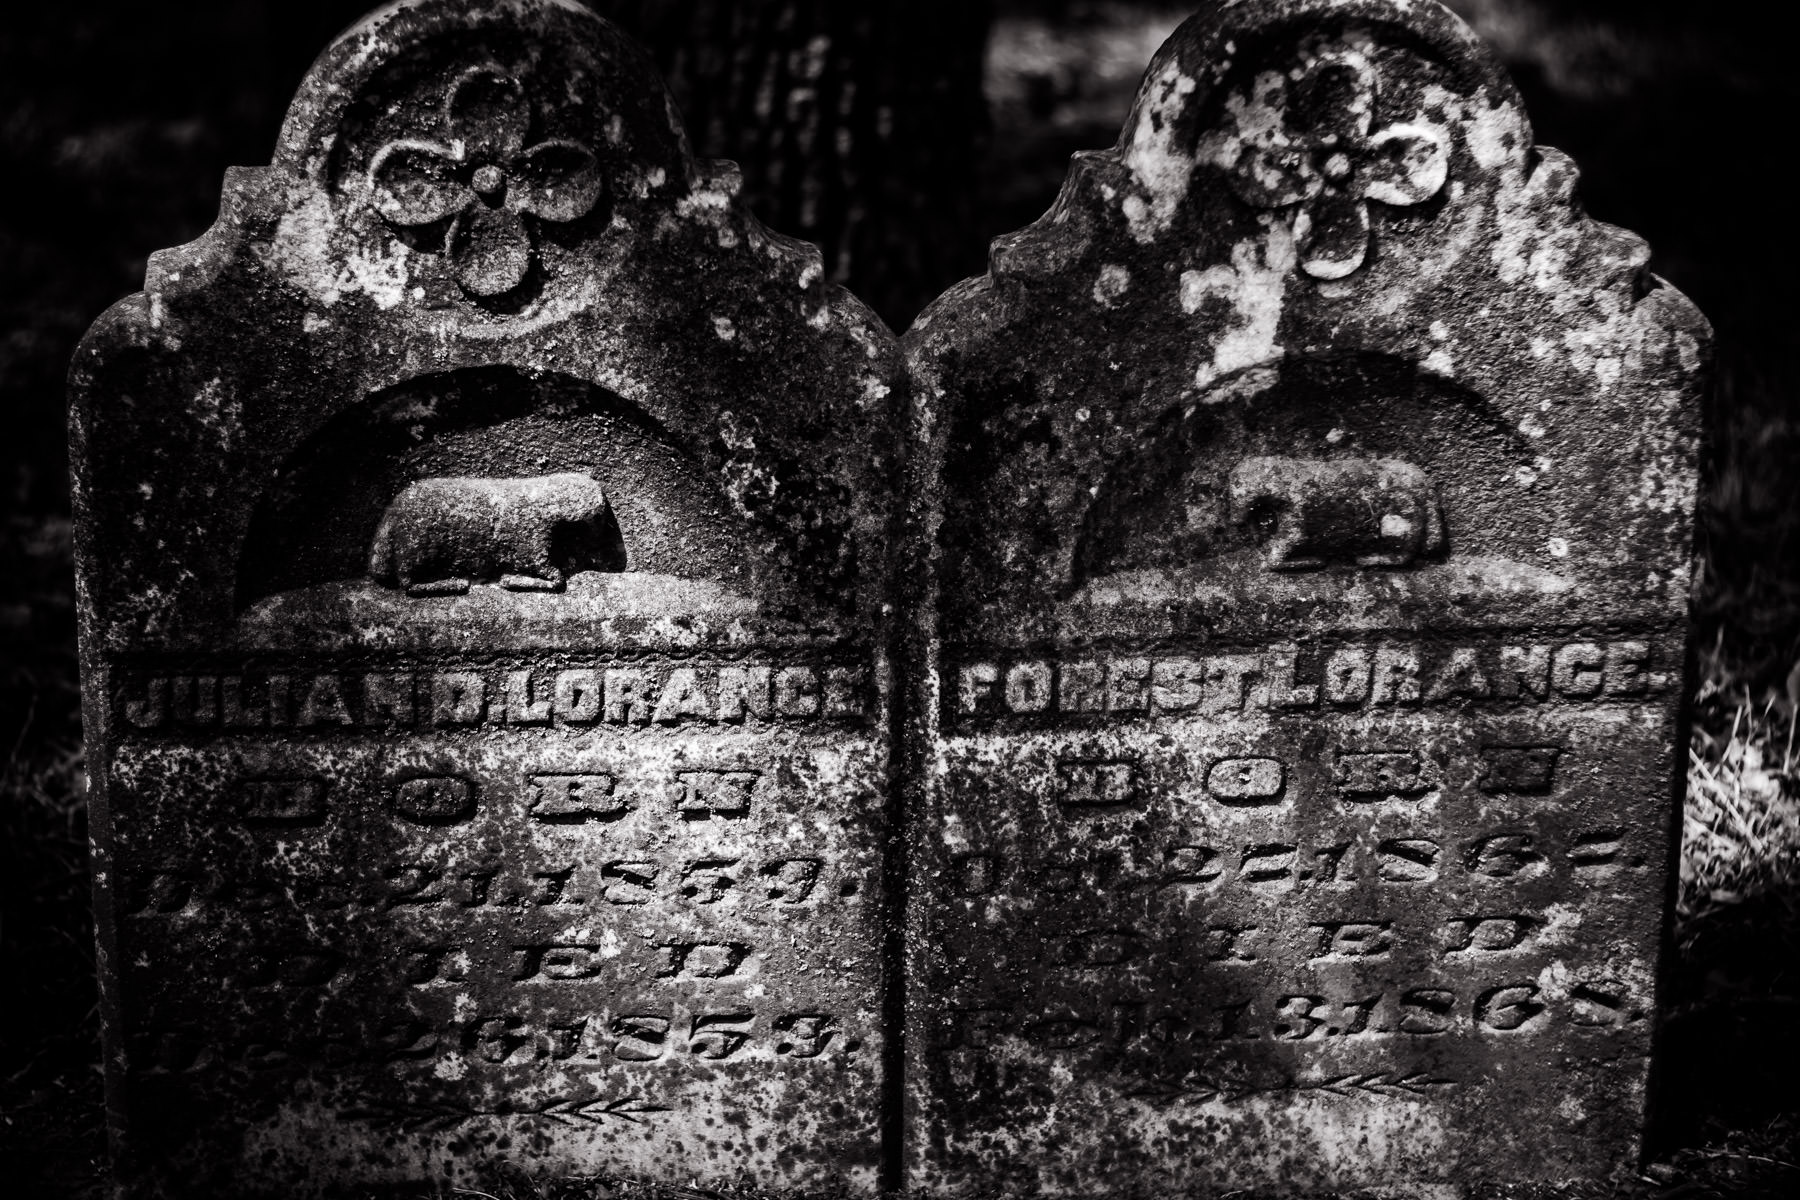 Headstones of long-dead brothers in Cleburne, Texas.